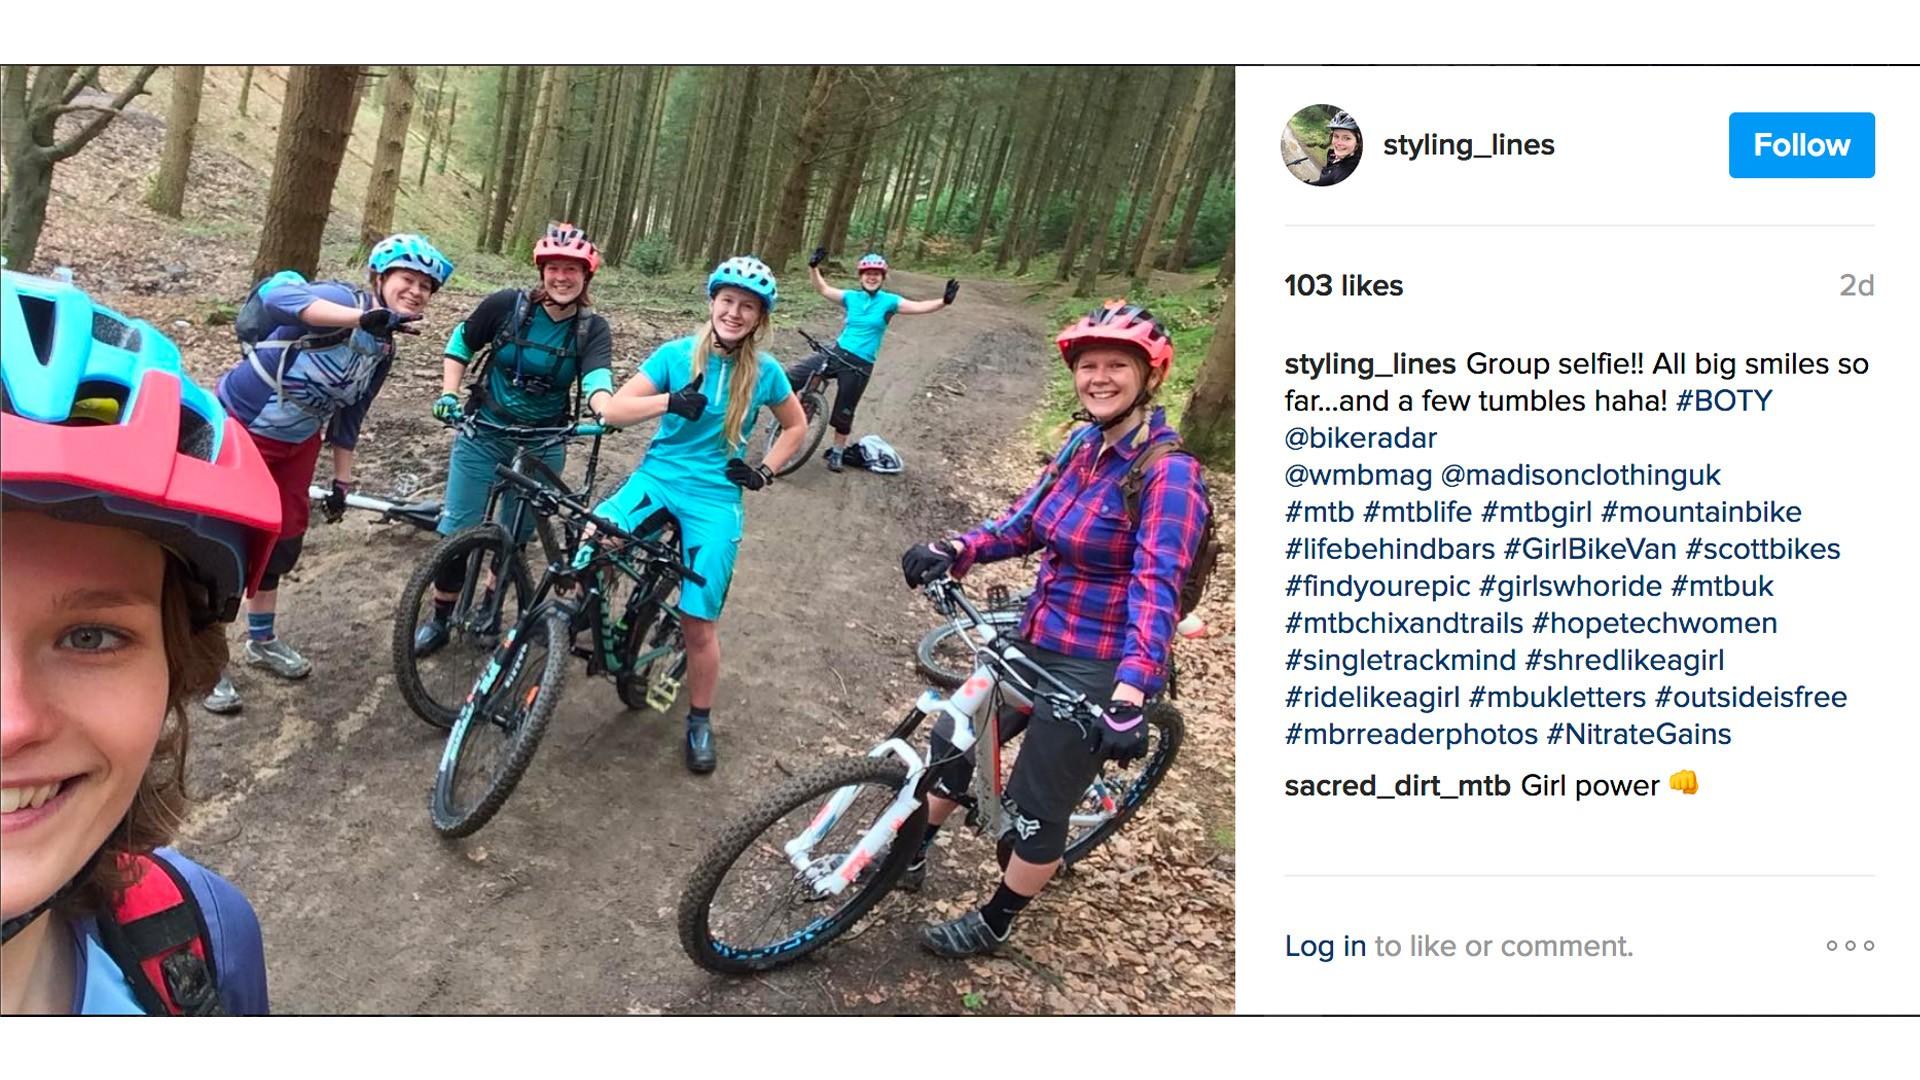 Fun on the trails! Check out the @bikeradar Instagram account for more pics from the weekend